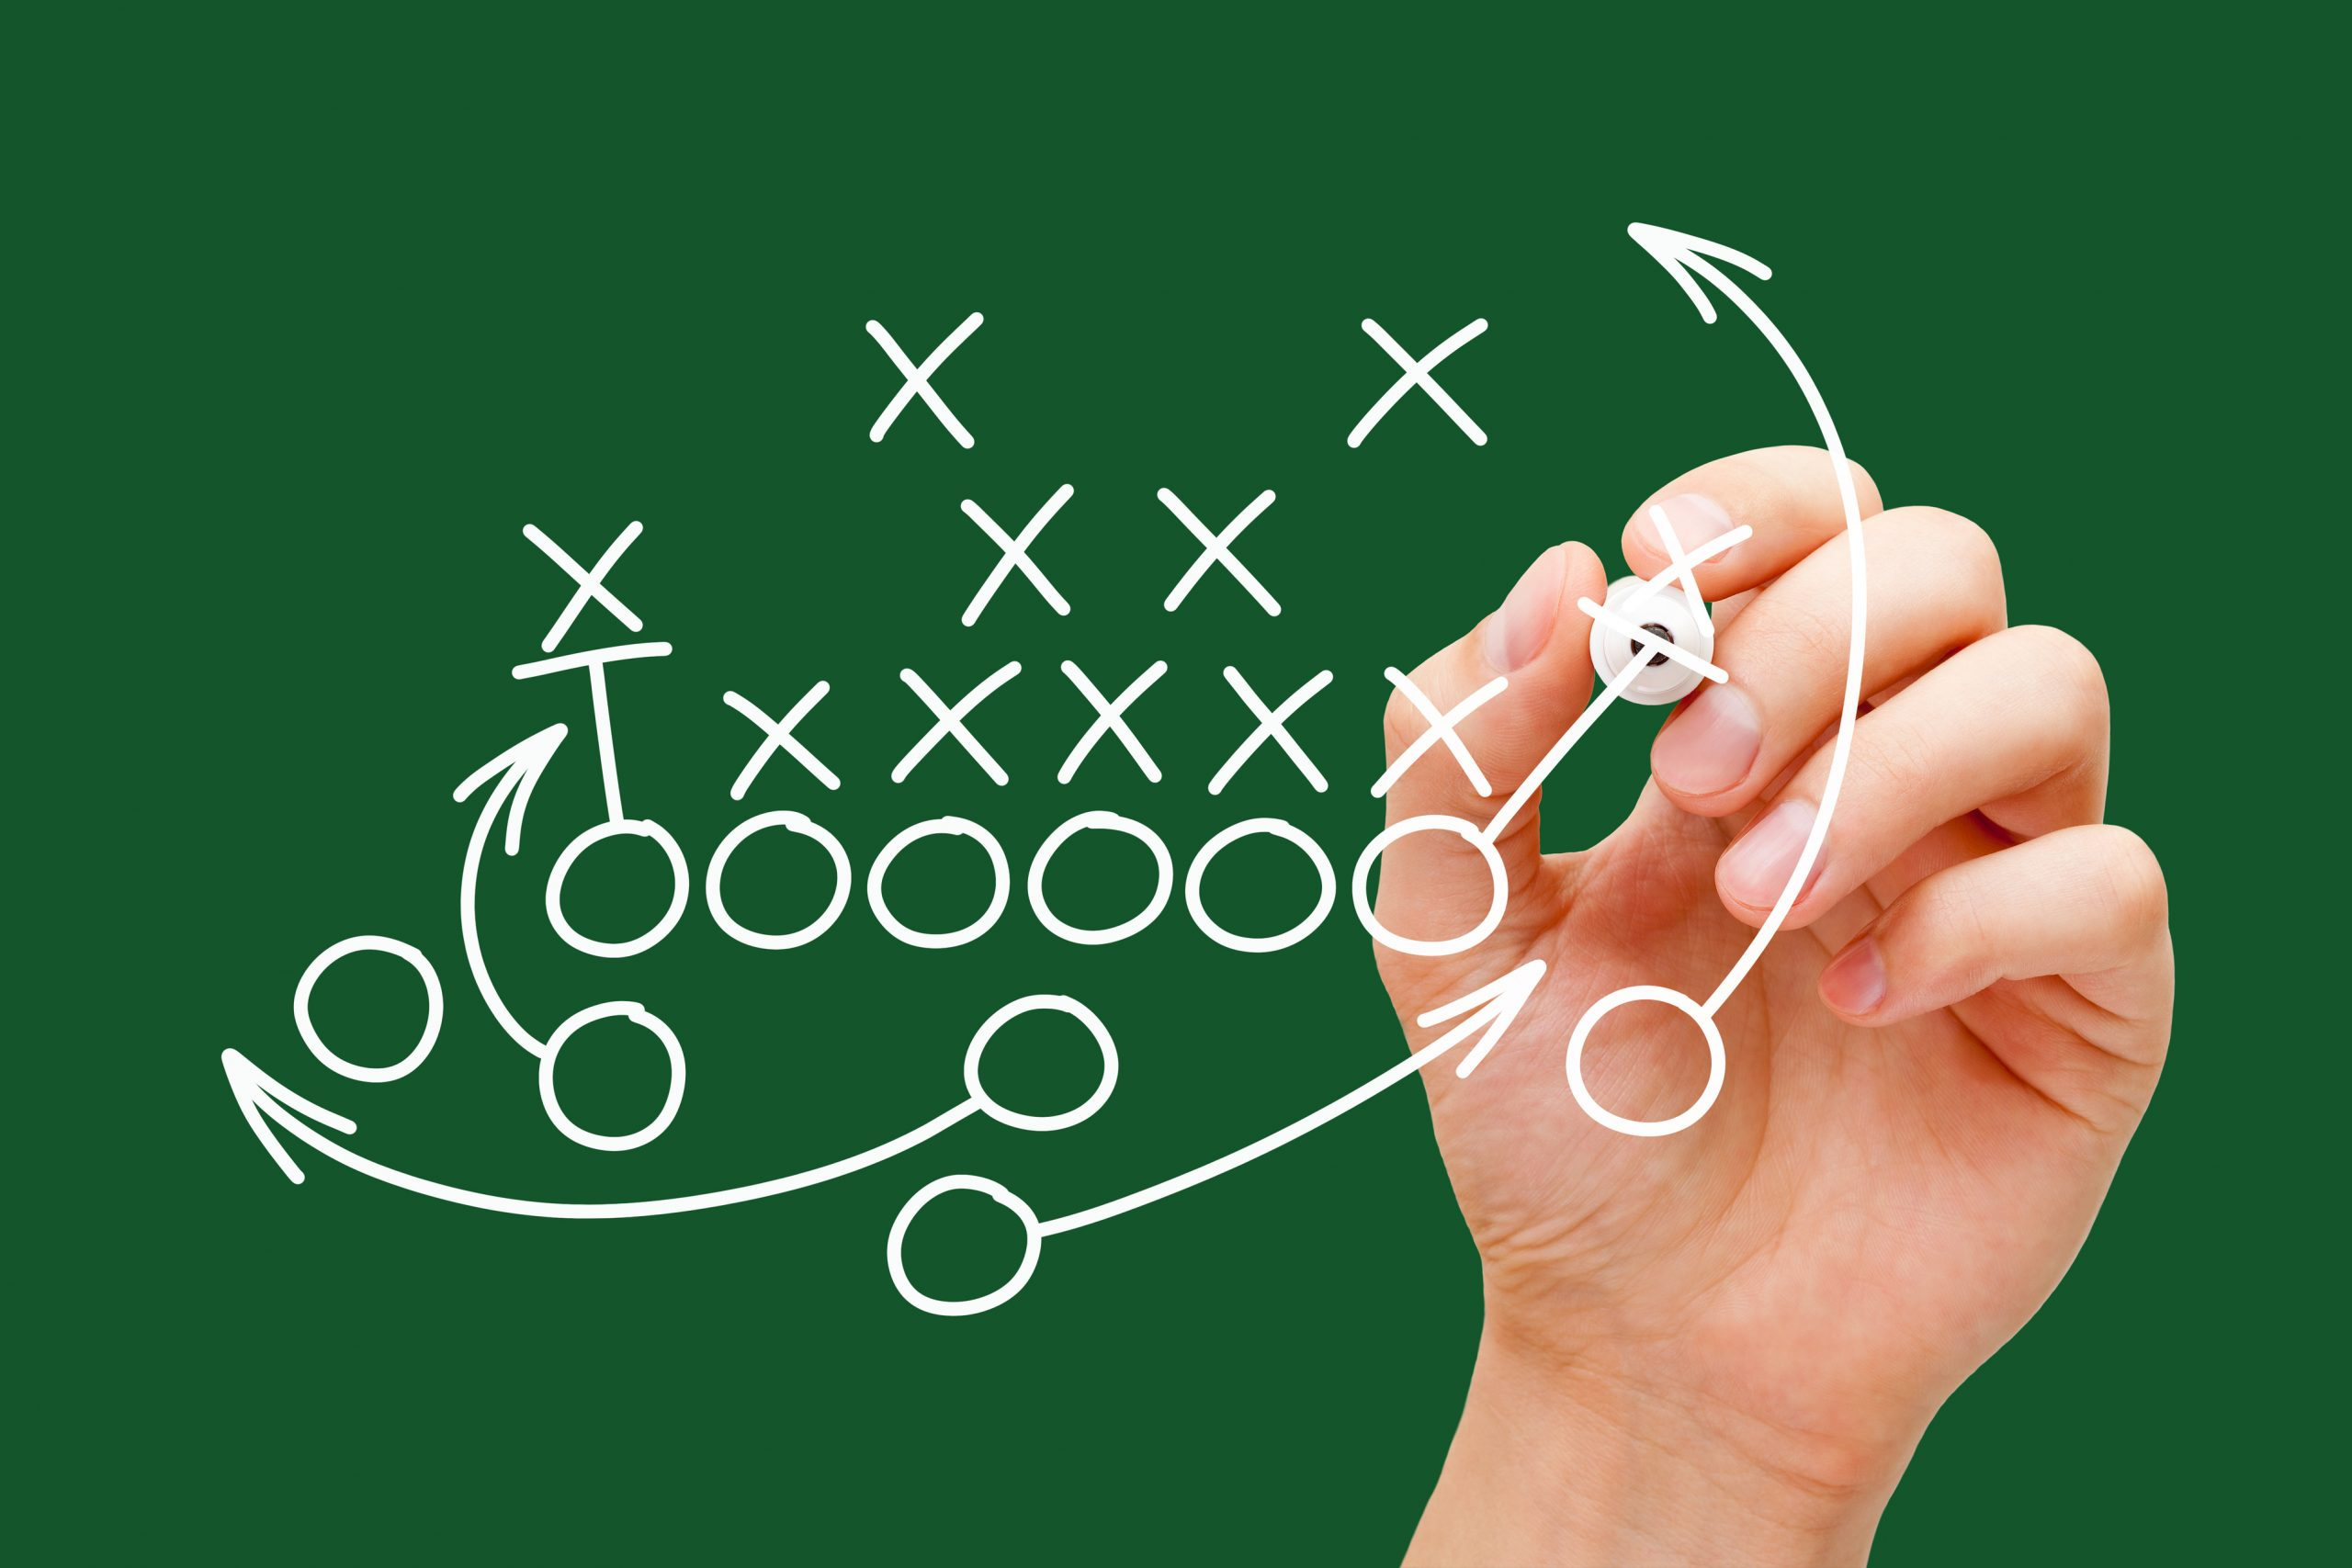 Coach drawing american football or rugby game playbook, strategy and tactics with white marker on green background.